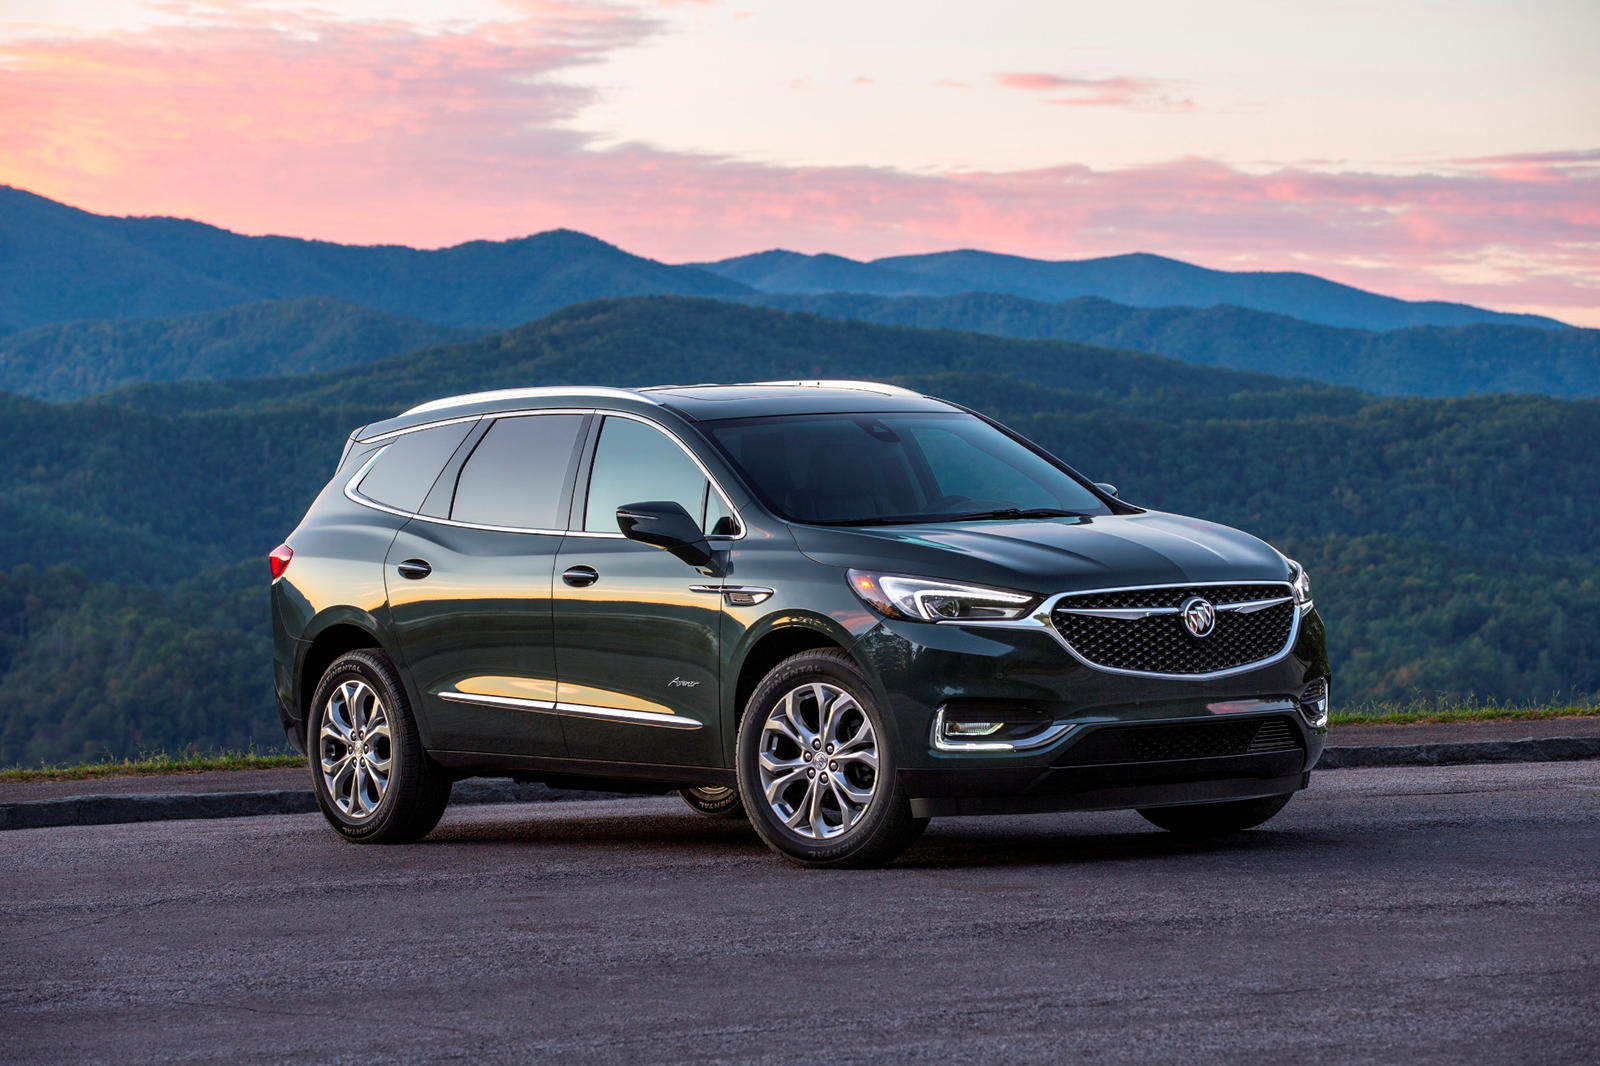 first nyias the for subbrand luxe more vehicle avenir enclave suv launches with price made a to decision instead has premium buick sensible bear